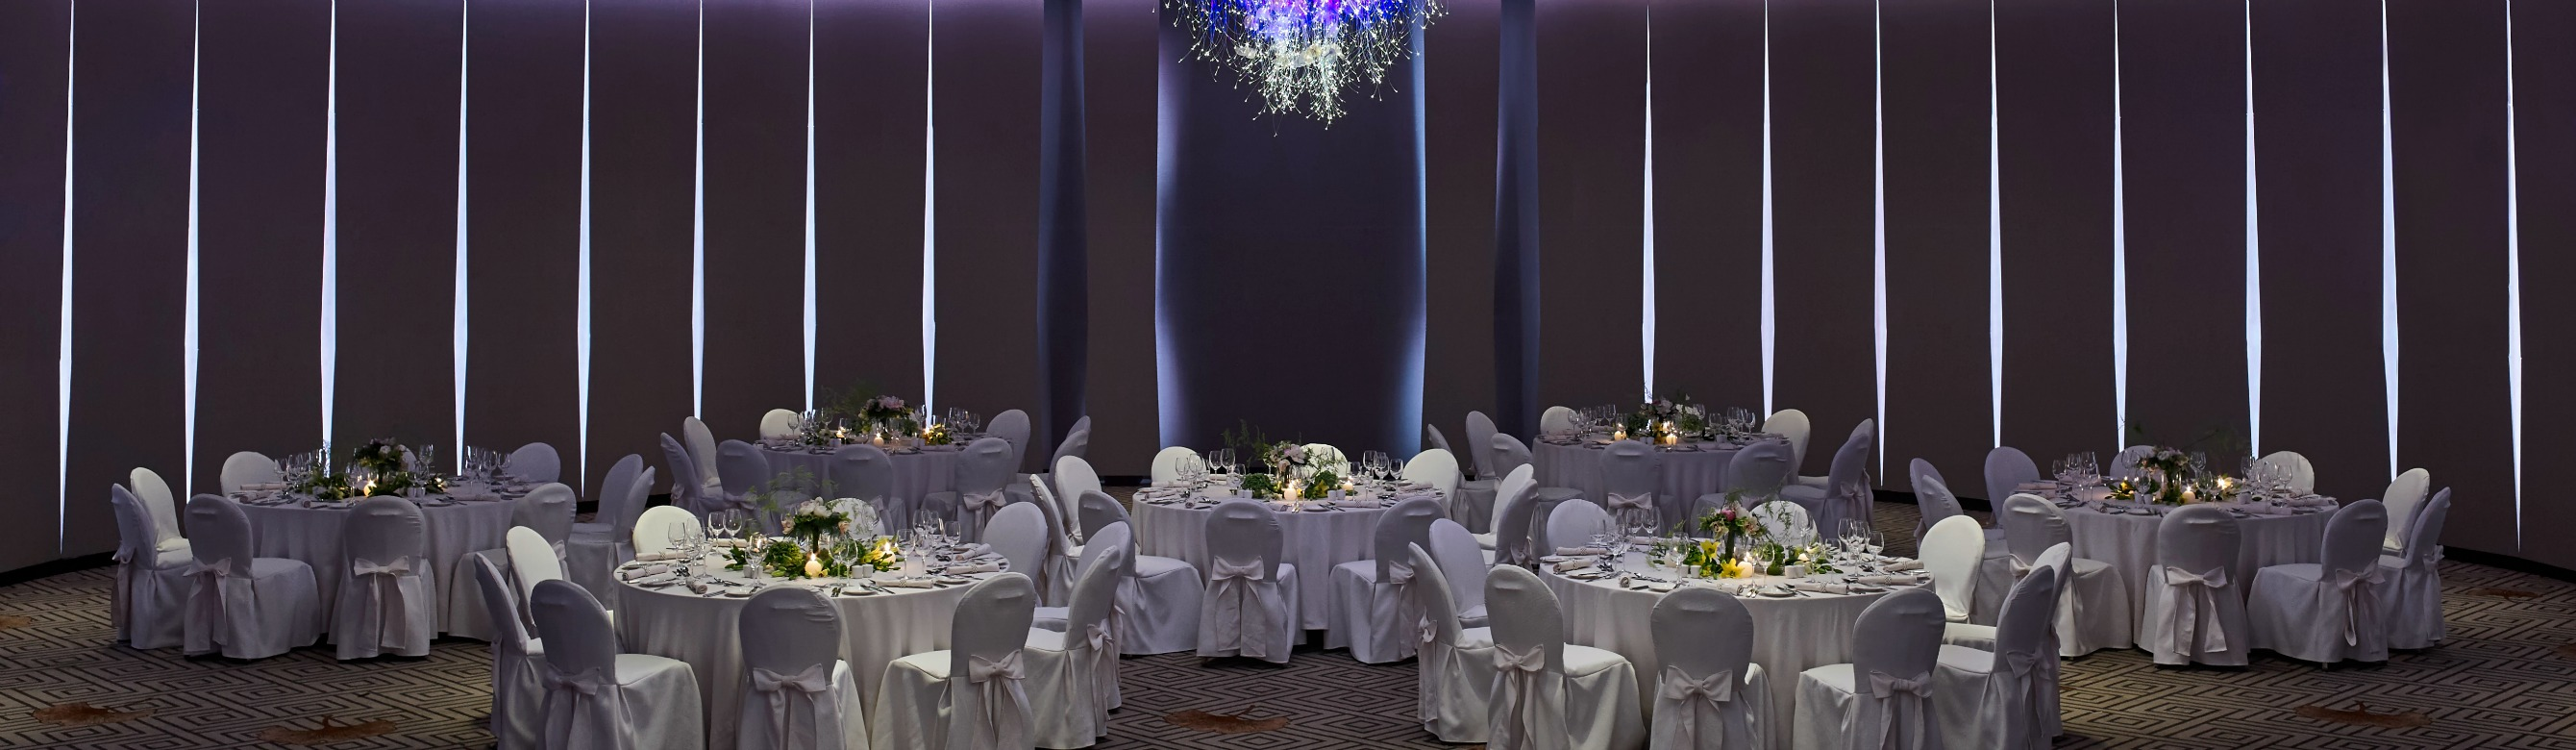 FourSeasonsCyprus_Ballroom_Weddings.jpg